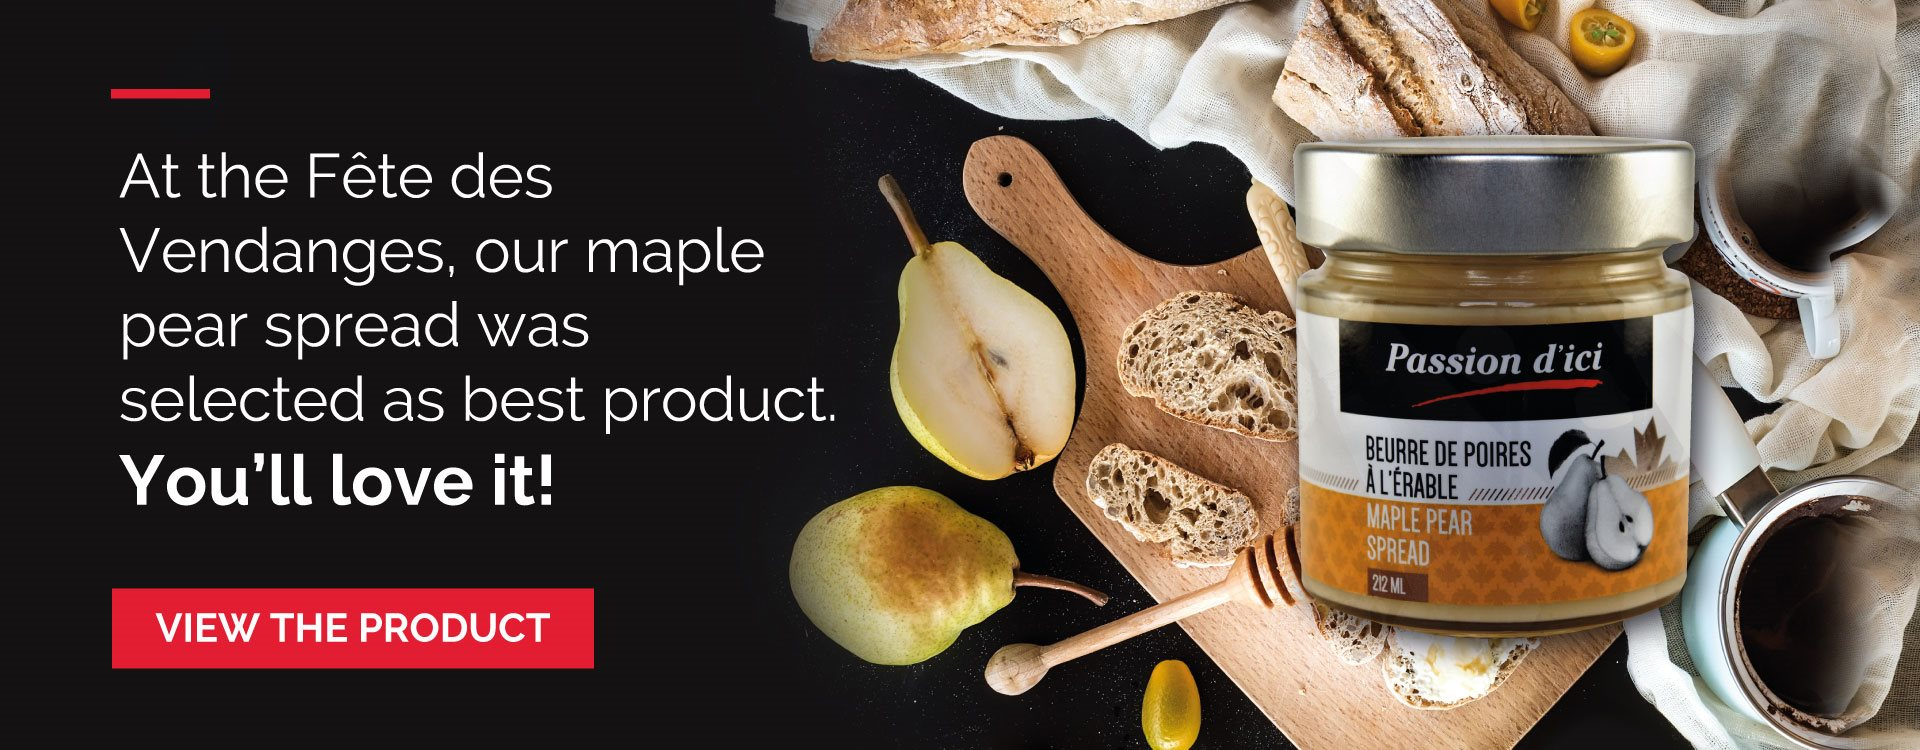 Our maple pear spread  was selected as best product